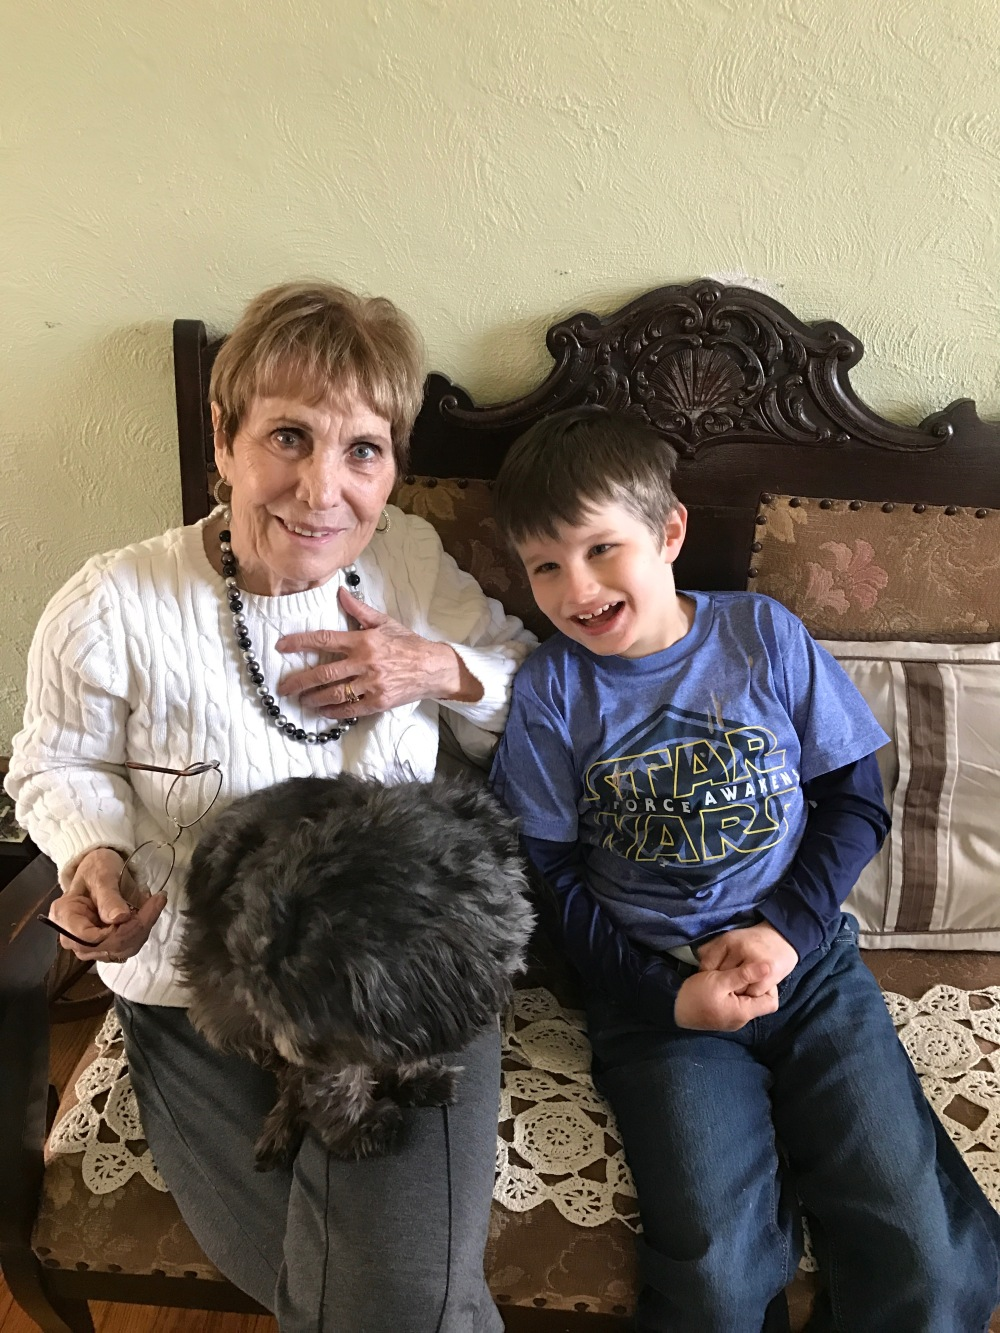 My mom, Koan, and her dog Max